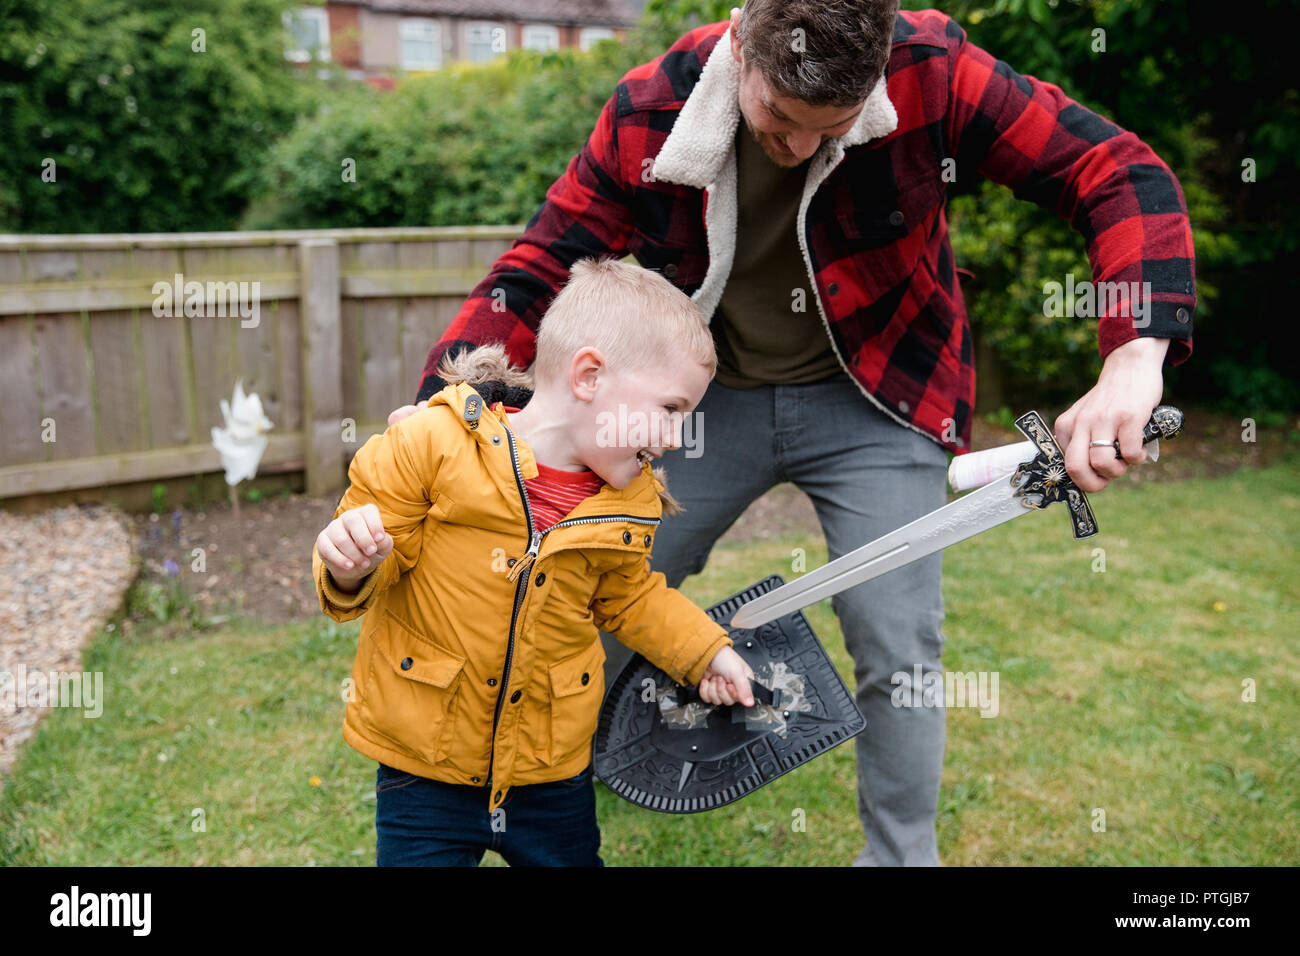 Little boy and his father playing in the front garden on the grass. They are playing with a toy sword and sheild. They are laughing and having fun tog - Stock Image